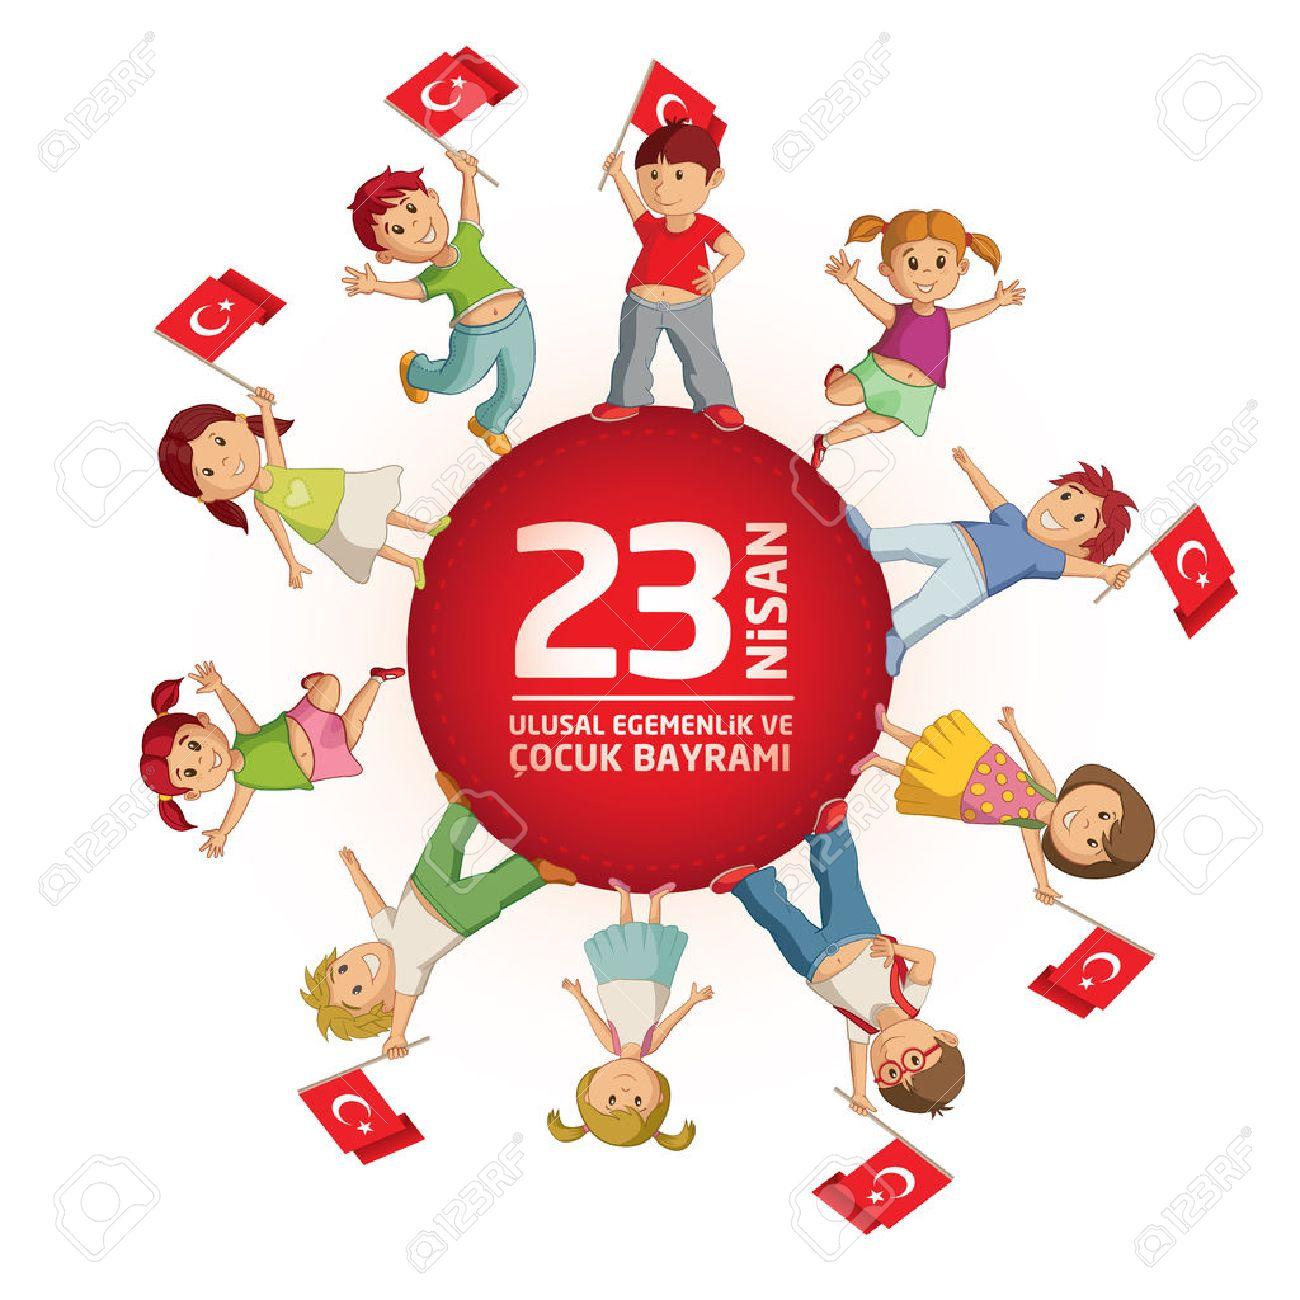 Vector illustration of the 23 Nisan Çocuk Bayrami, April 23 Turkish National Sovereignty and Children's Day, design template for the Turkish holiday. - 74487164